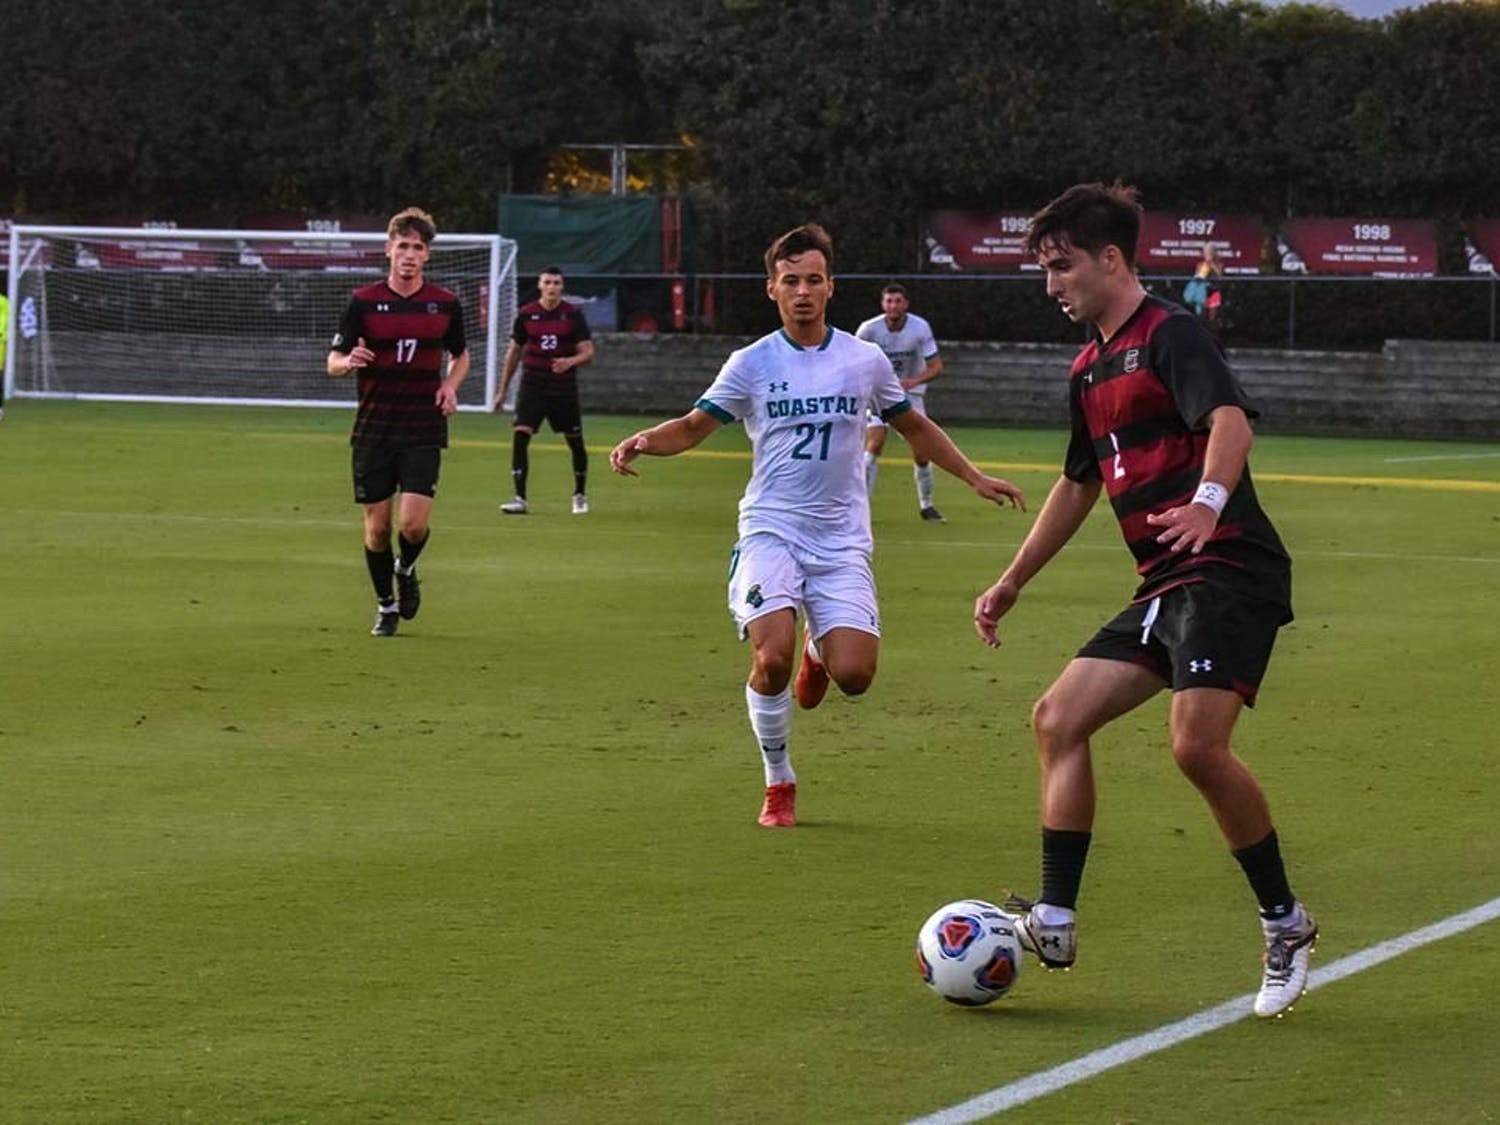 Gamecock junior forward Logan Frost watches sophomore Gamecock Justin Kopay take control of the ball. The Chanticleers beat the Gamecocks 4-1 in a match that saw only 10 Gamecocks on the field for the majority of the game.